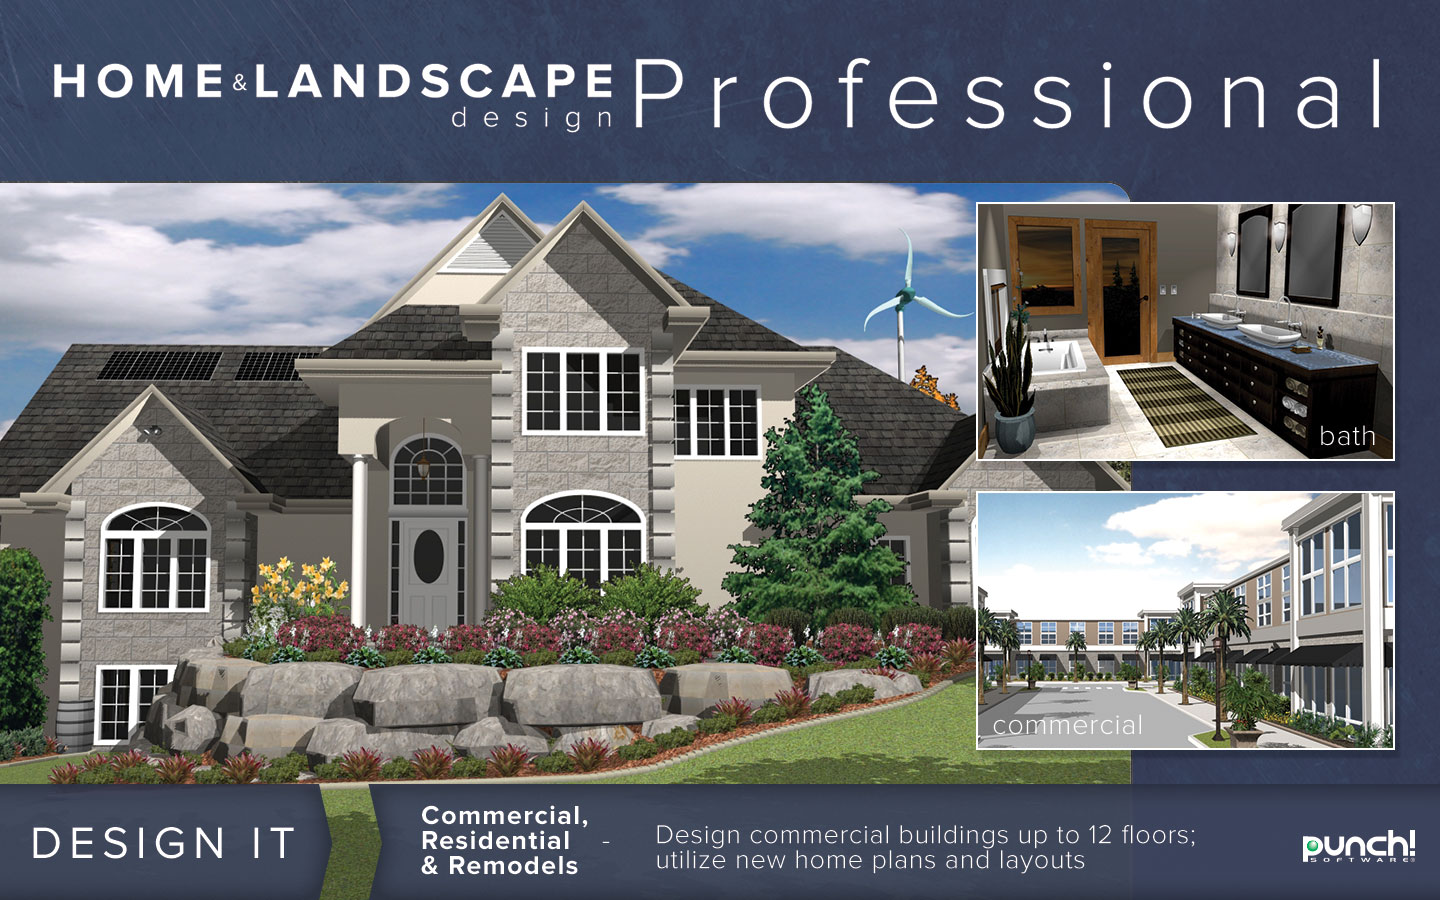 punch! home & landscape design professional v18 | #1 selling logo